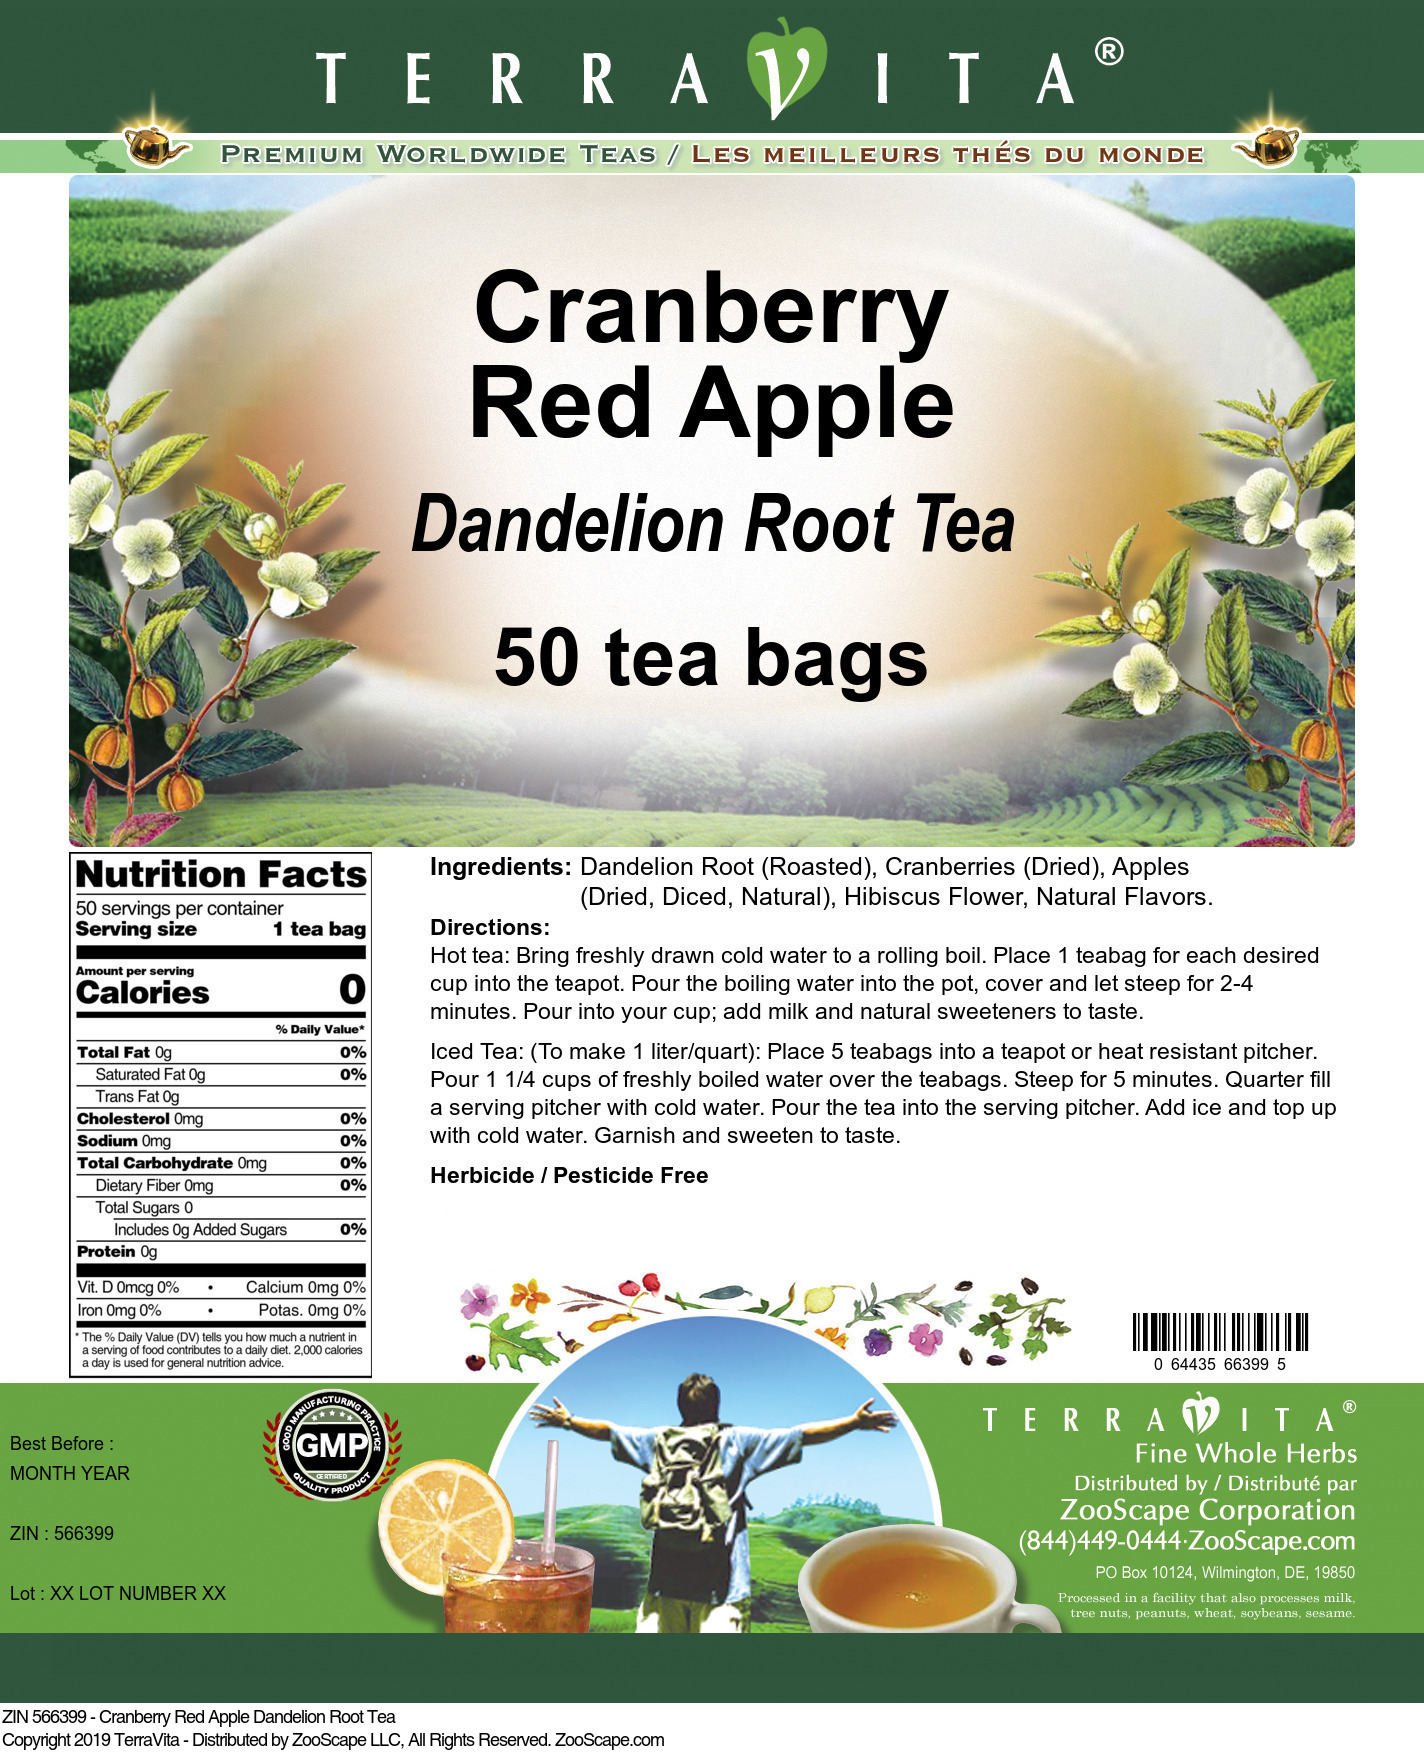 Cranberry Red Apple Dandelion Root